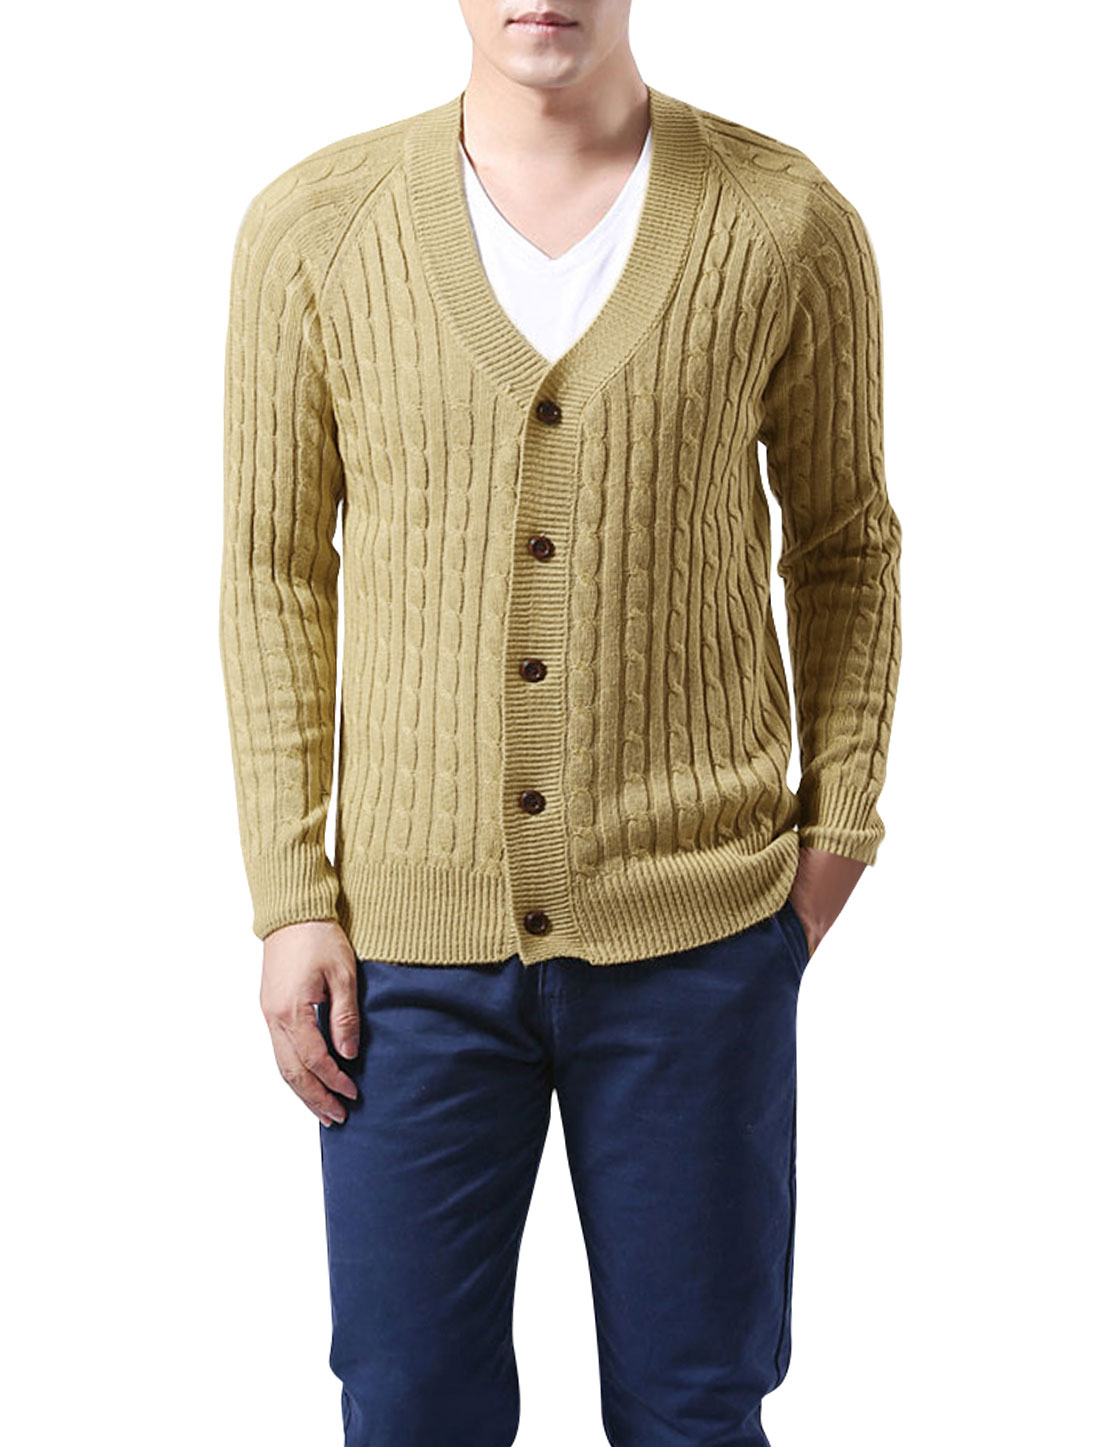 Man V Neck Long Raglan Sleeve Light Yellow Button Down Cardigan Sweater M